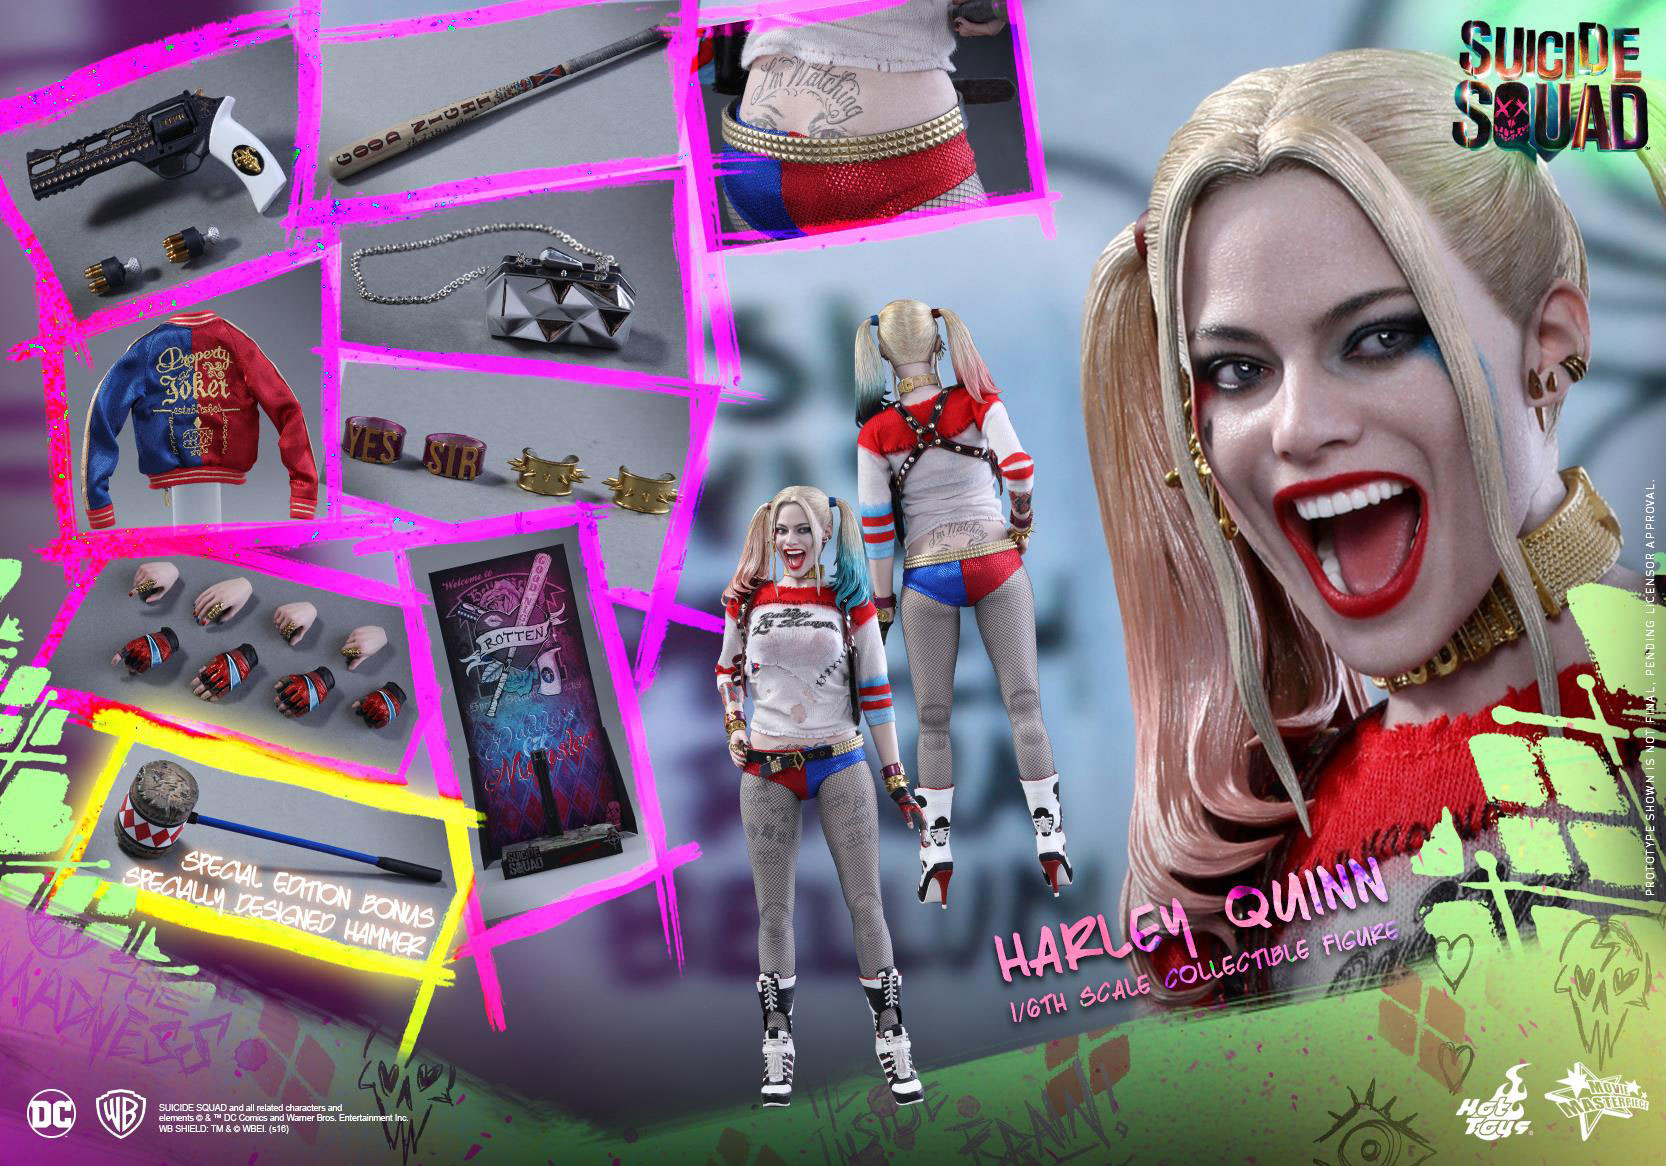 Hot-Toys-Suicide-Squad-Harley-Quinn-18